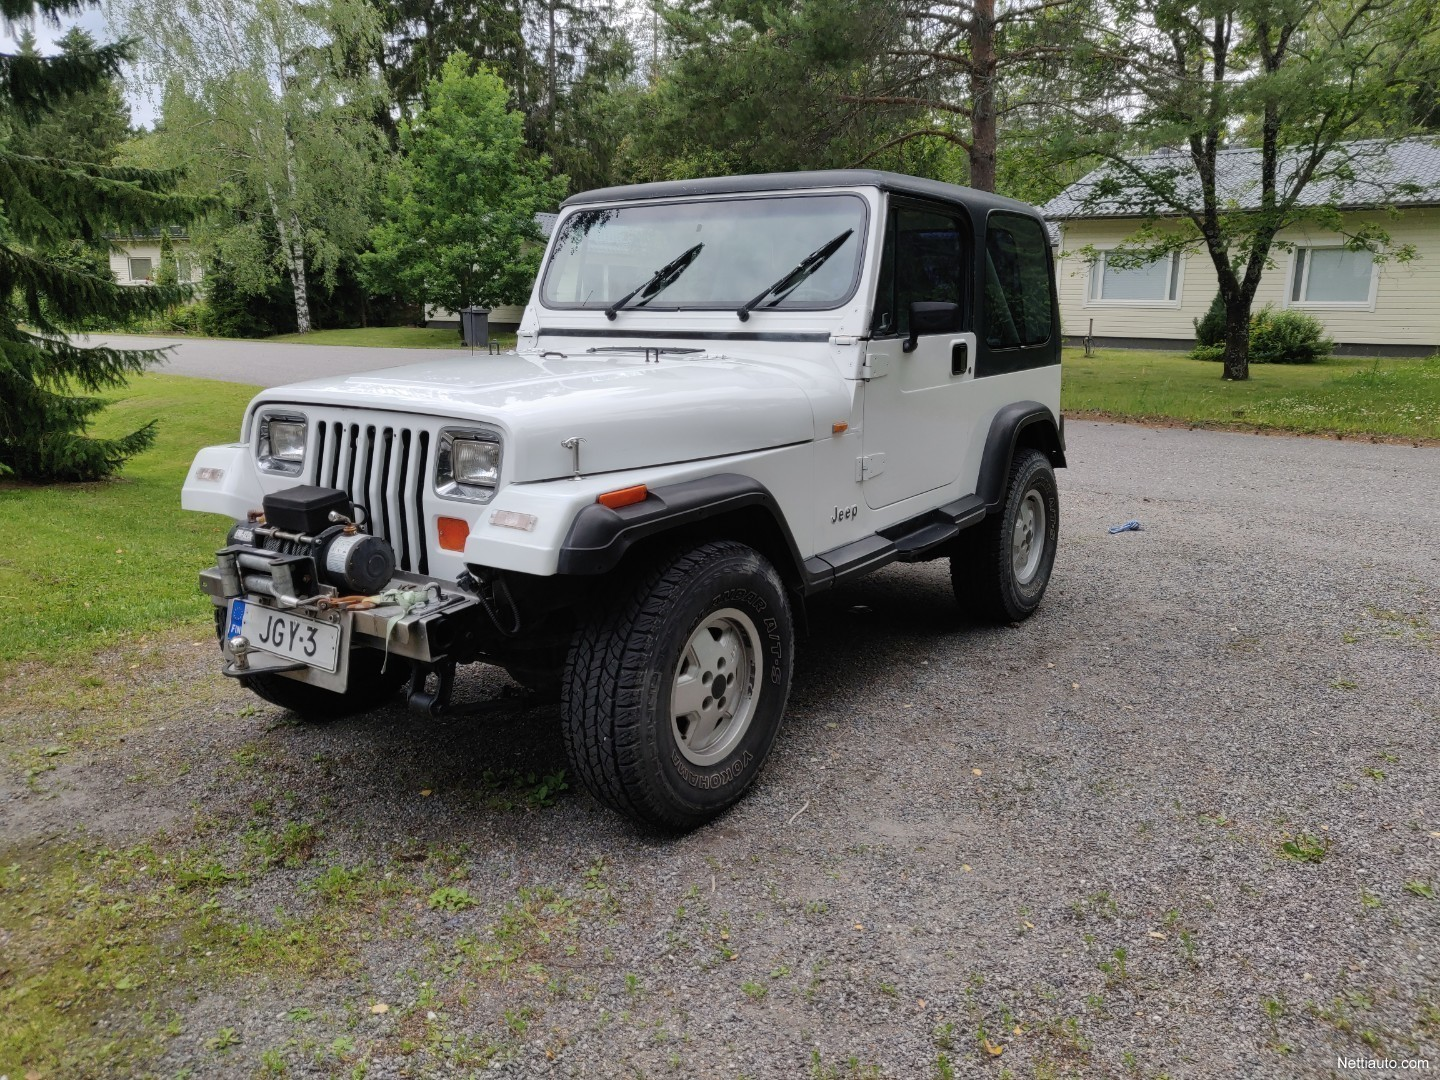 Jeep Wrangler Rims And Tire Packages >> Jeep Wrangler 4x4 1991 Used Vehicle Nettiauto